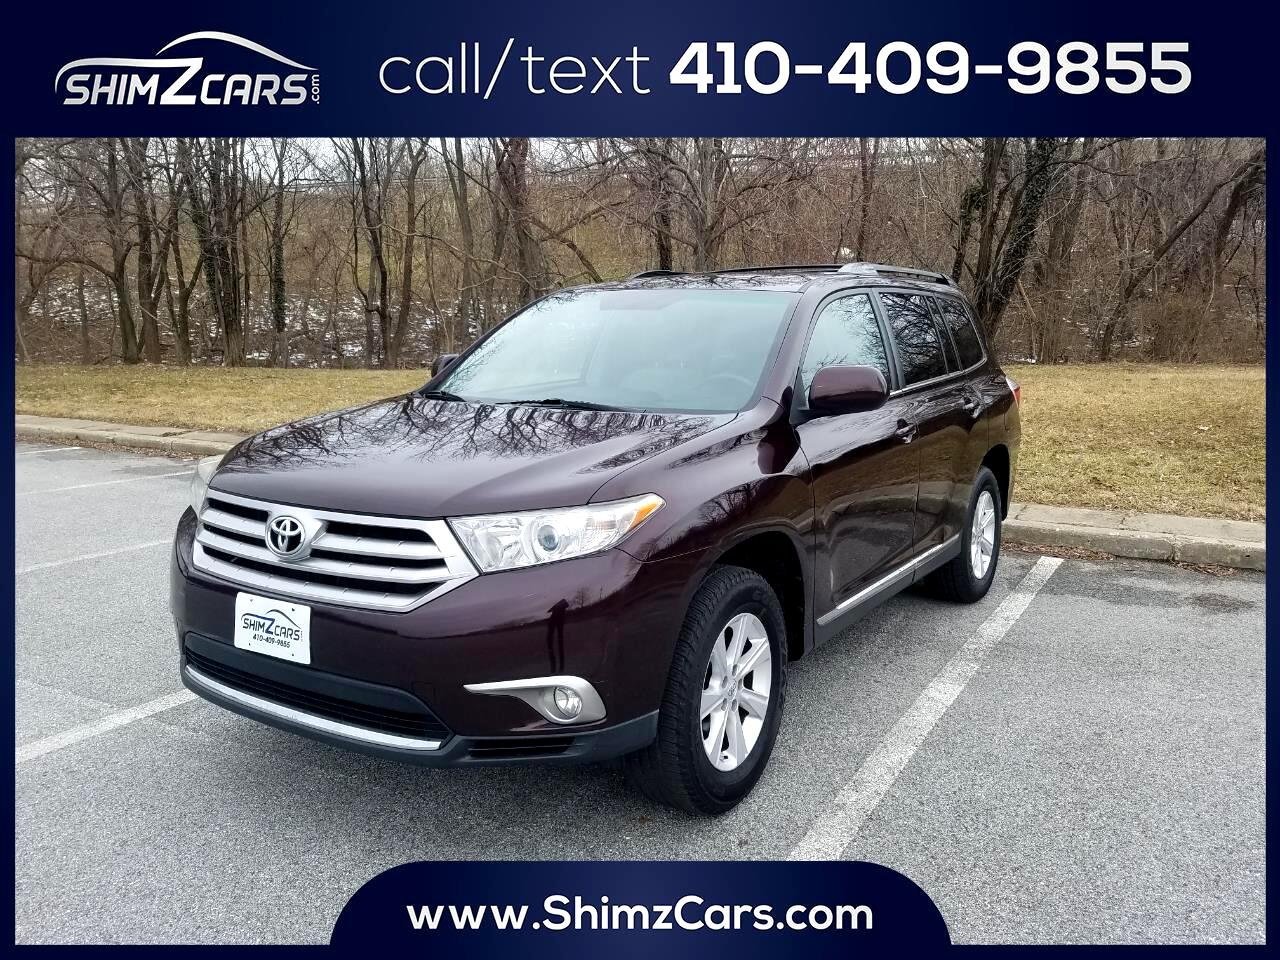 2011 Toyota Highlander FWD 4dr L4  Base (Natl)